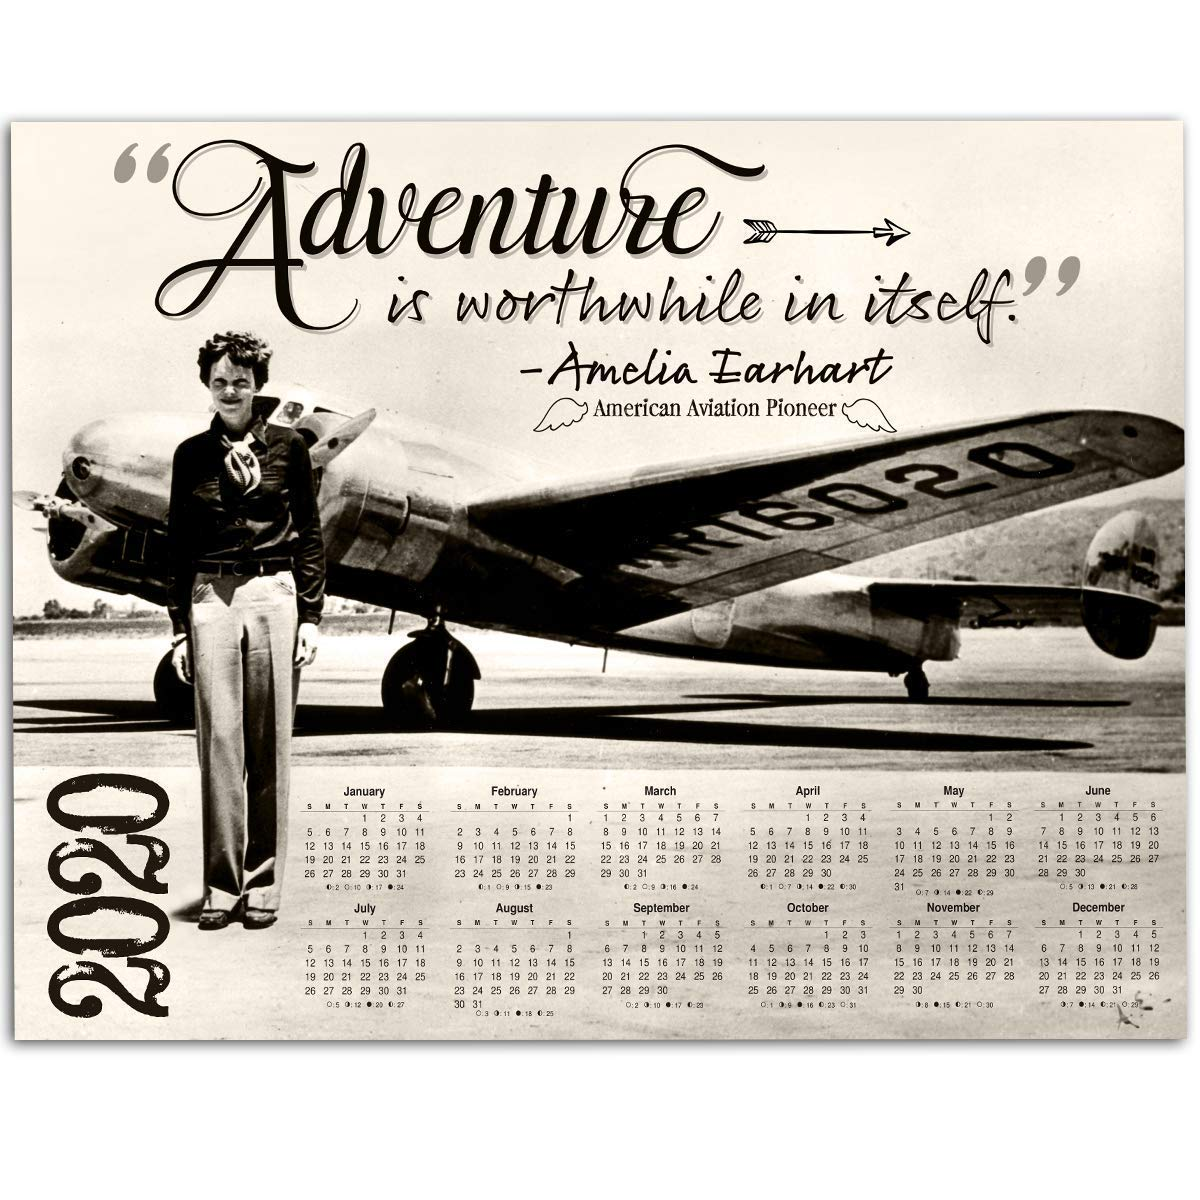 8 x 10 Photo of Amelia Earhart Aviation Art and Gifts